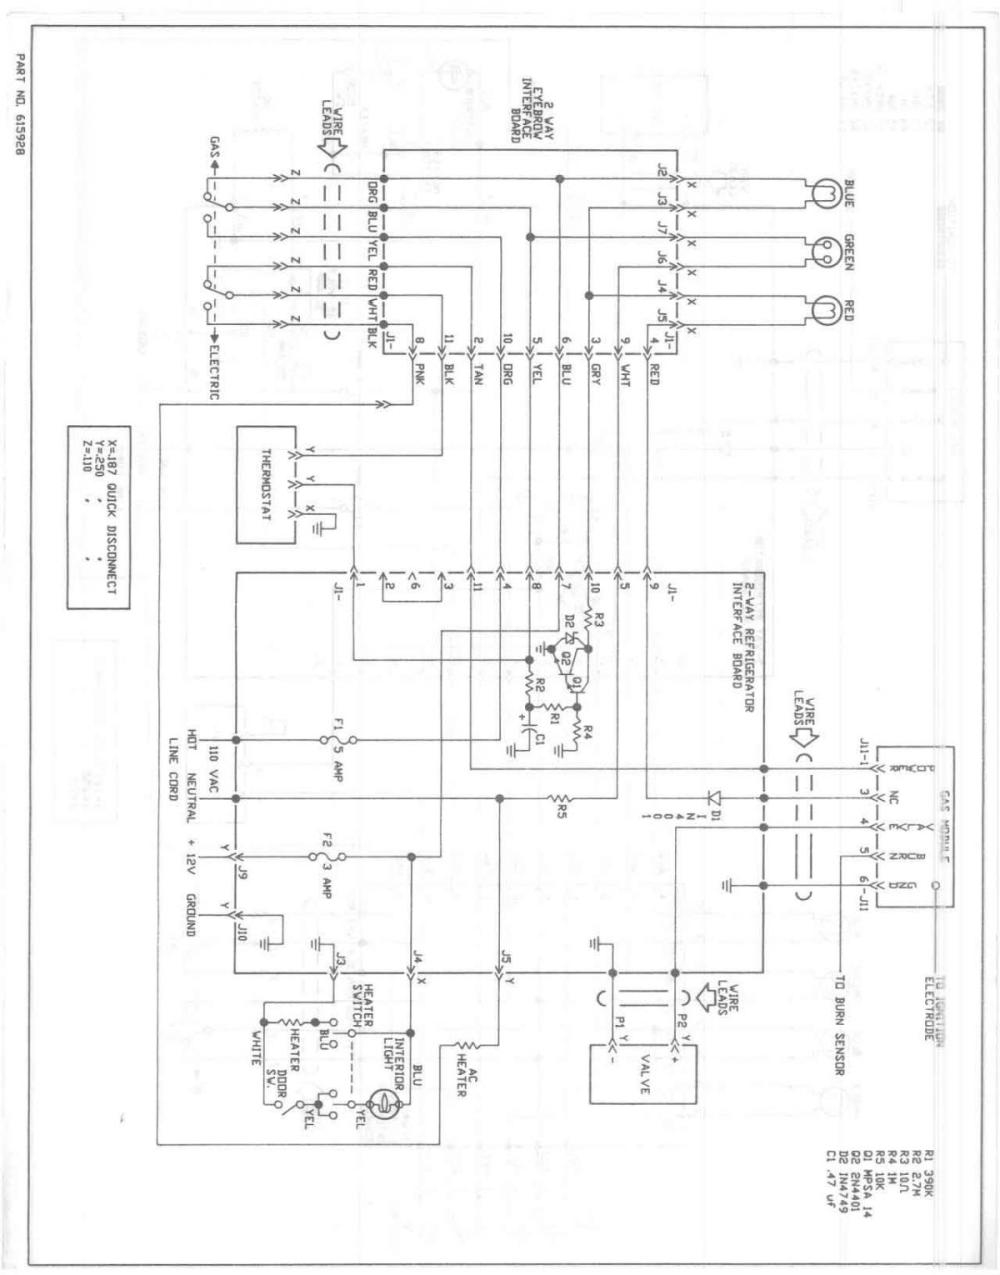 medium resolution of norcold rv refrigerator wiring diagram norcold 12 dometic rv fridge wiring diagram norcold wire colors to colder